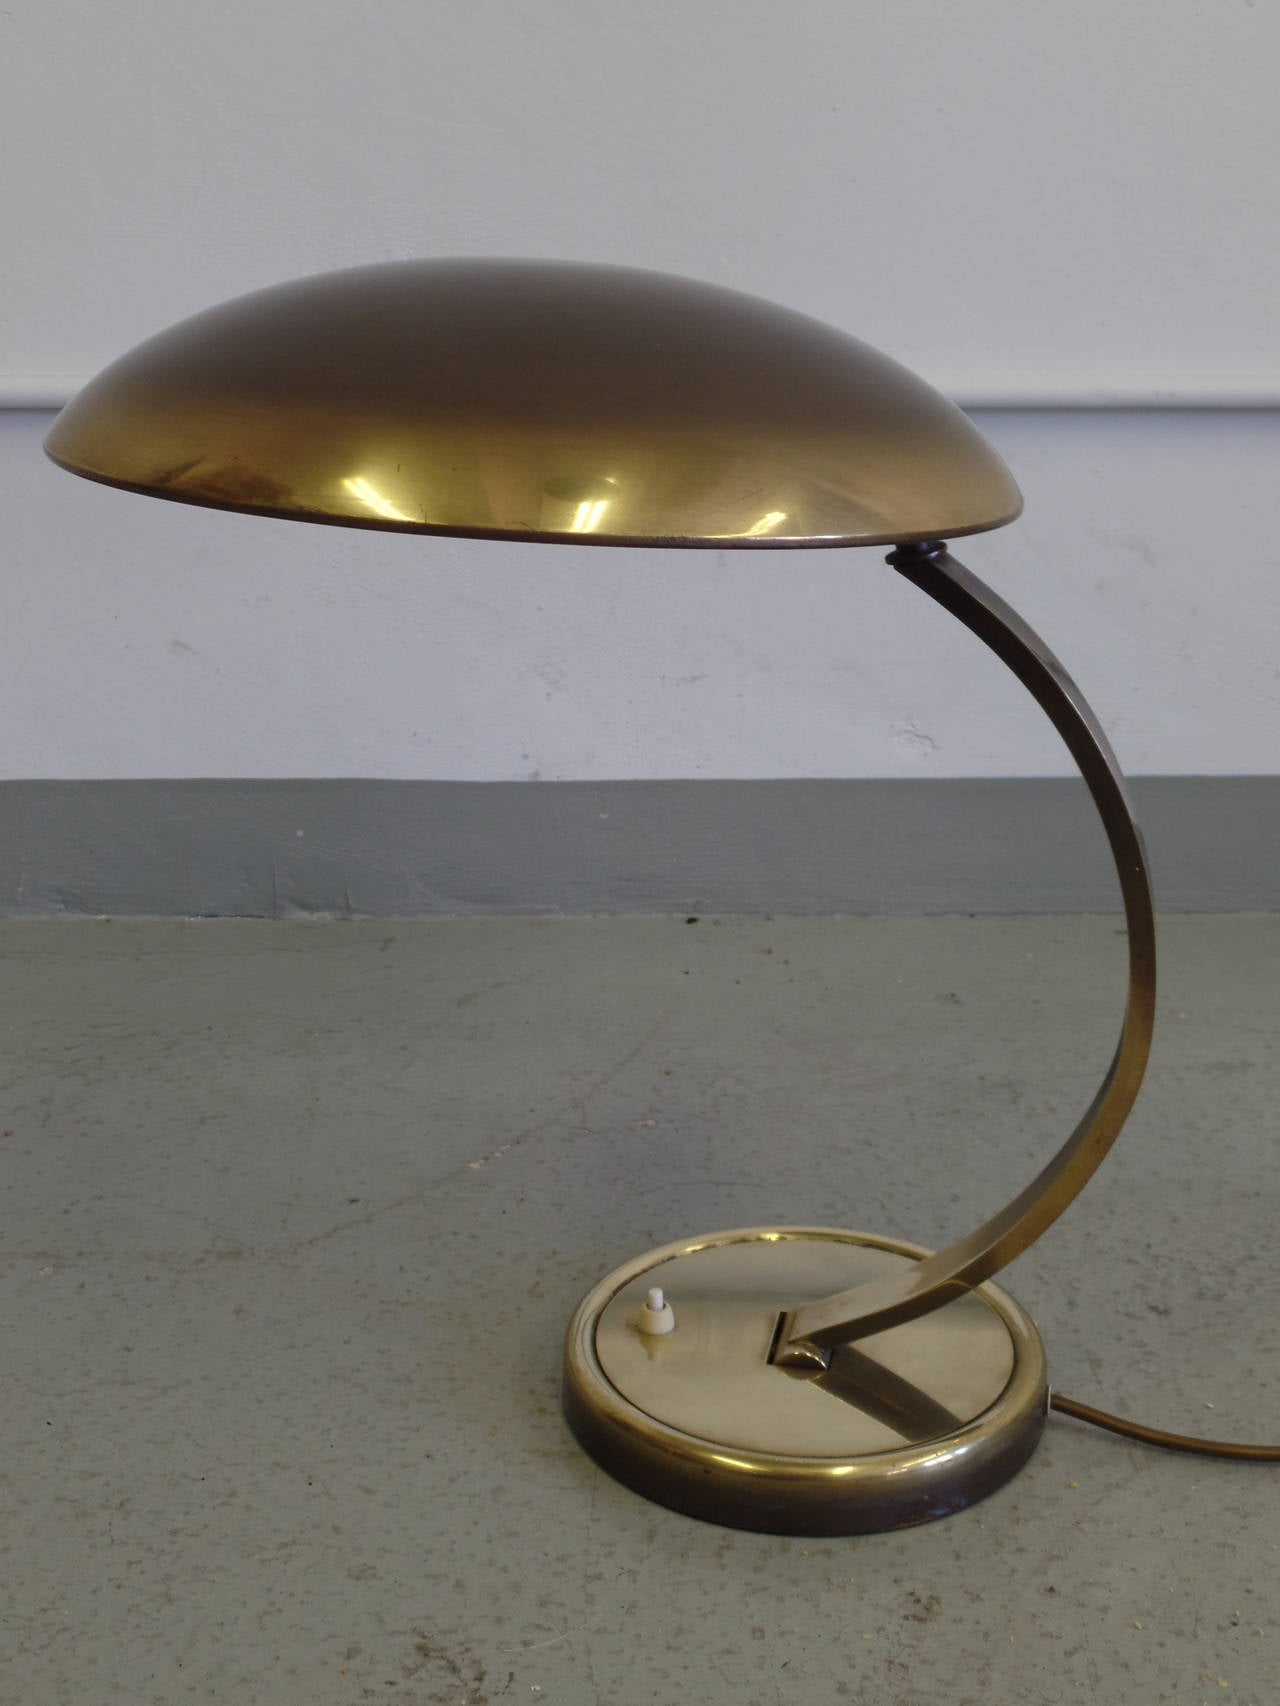 German 'Bauhaus' desk lamp in solid brass designed in the 1930 period and attributed to Hillebrand. Stabile, practical and fully adjustable; the lamp stem and shade both articulate.